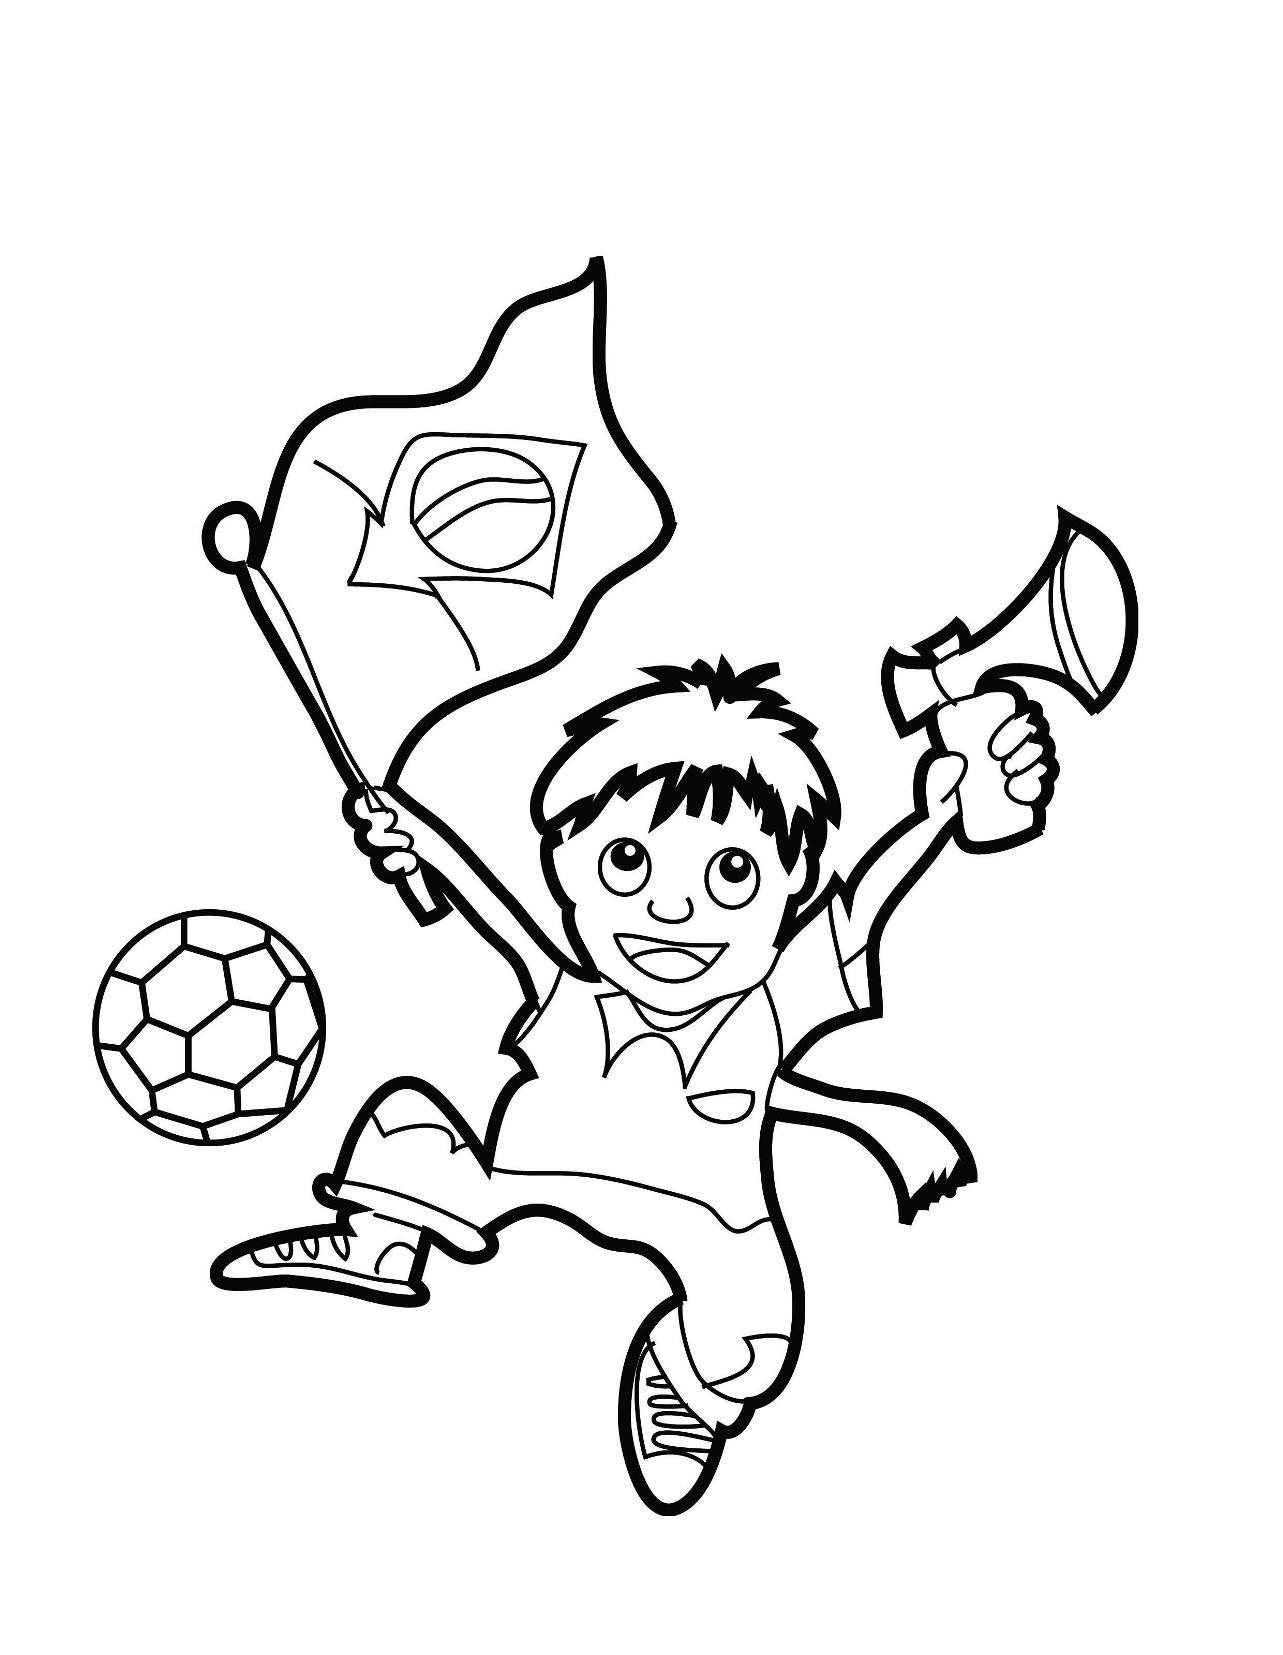 bandeira de coloring pages - photo#29